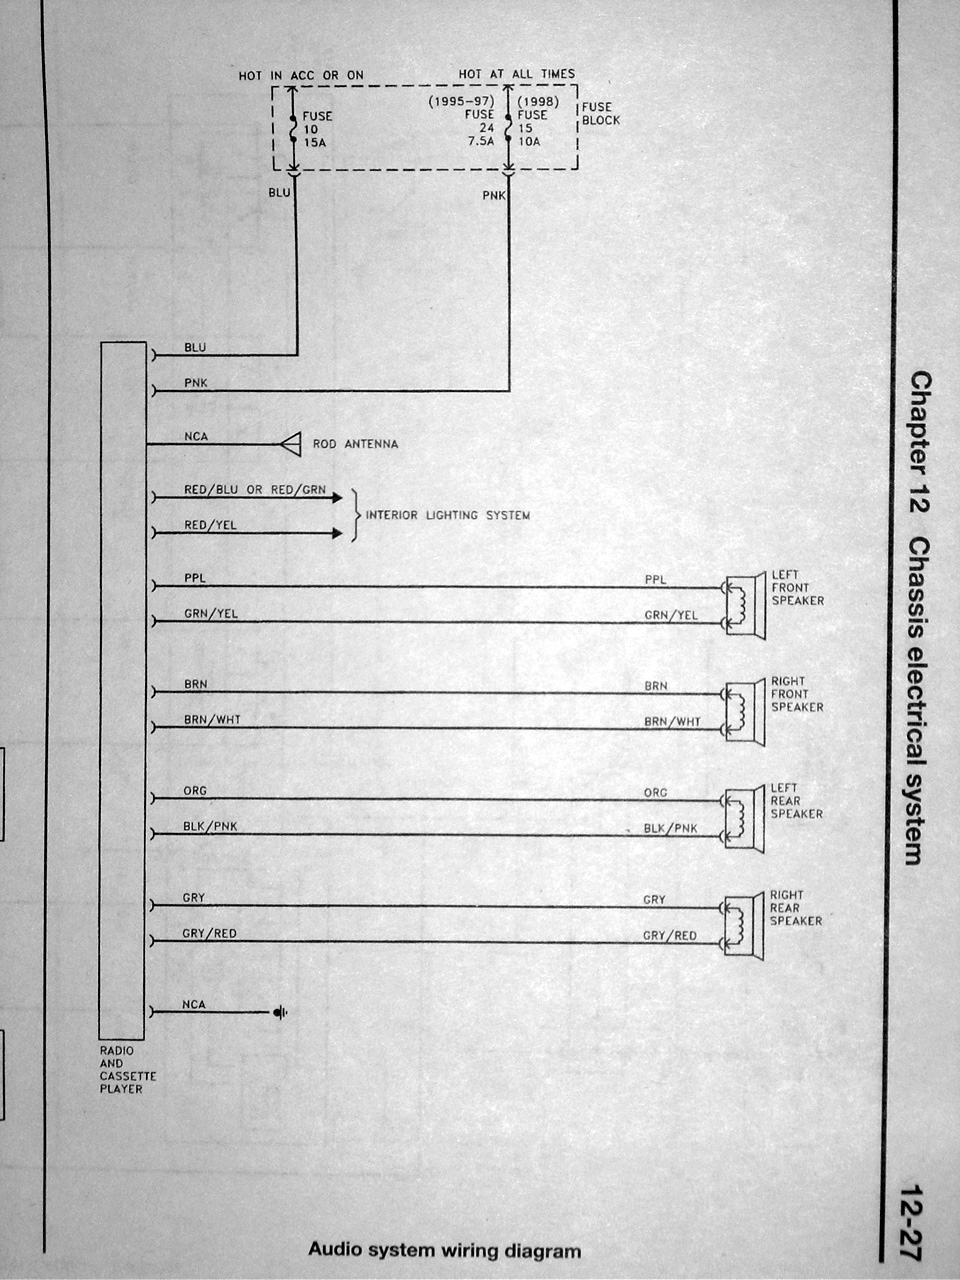 DSC01849 wiring diagram thread *useful info* nissan forum 2000 nissan altima wiring diagram at eliteediting.co